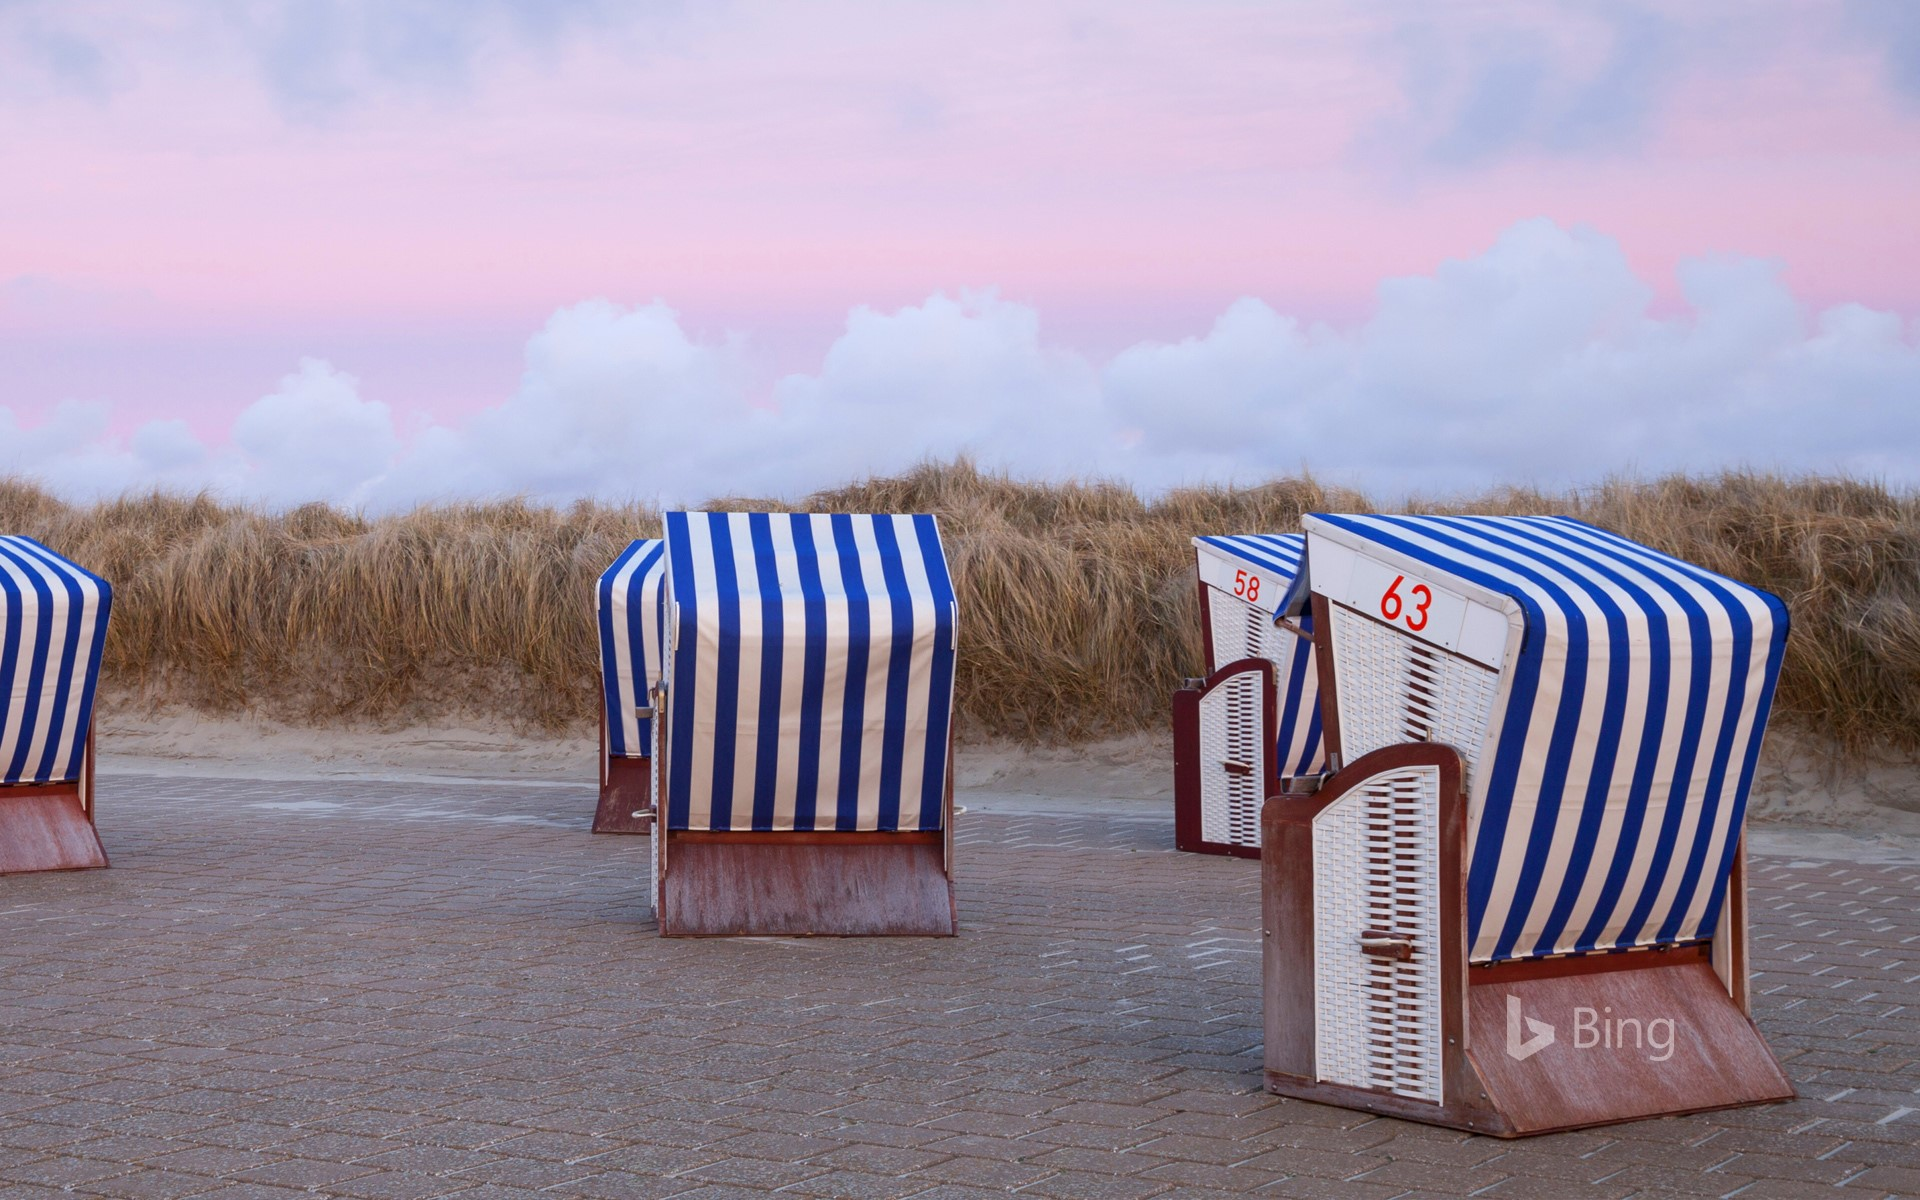 Beach chairs in the sunset on the north beach of the island of Borkum, Lower Saxony